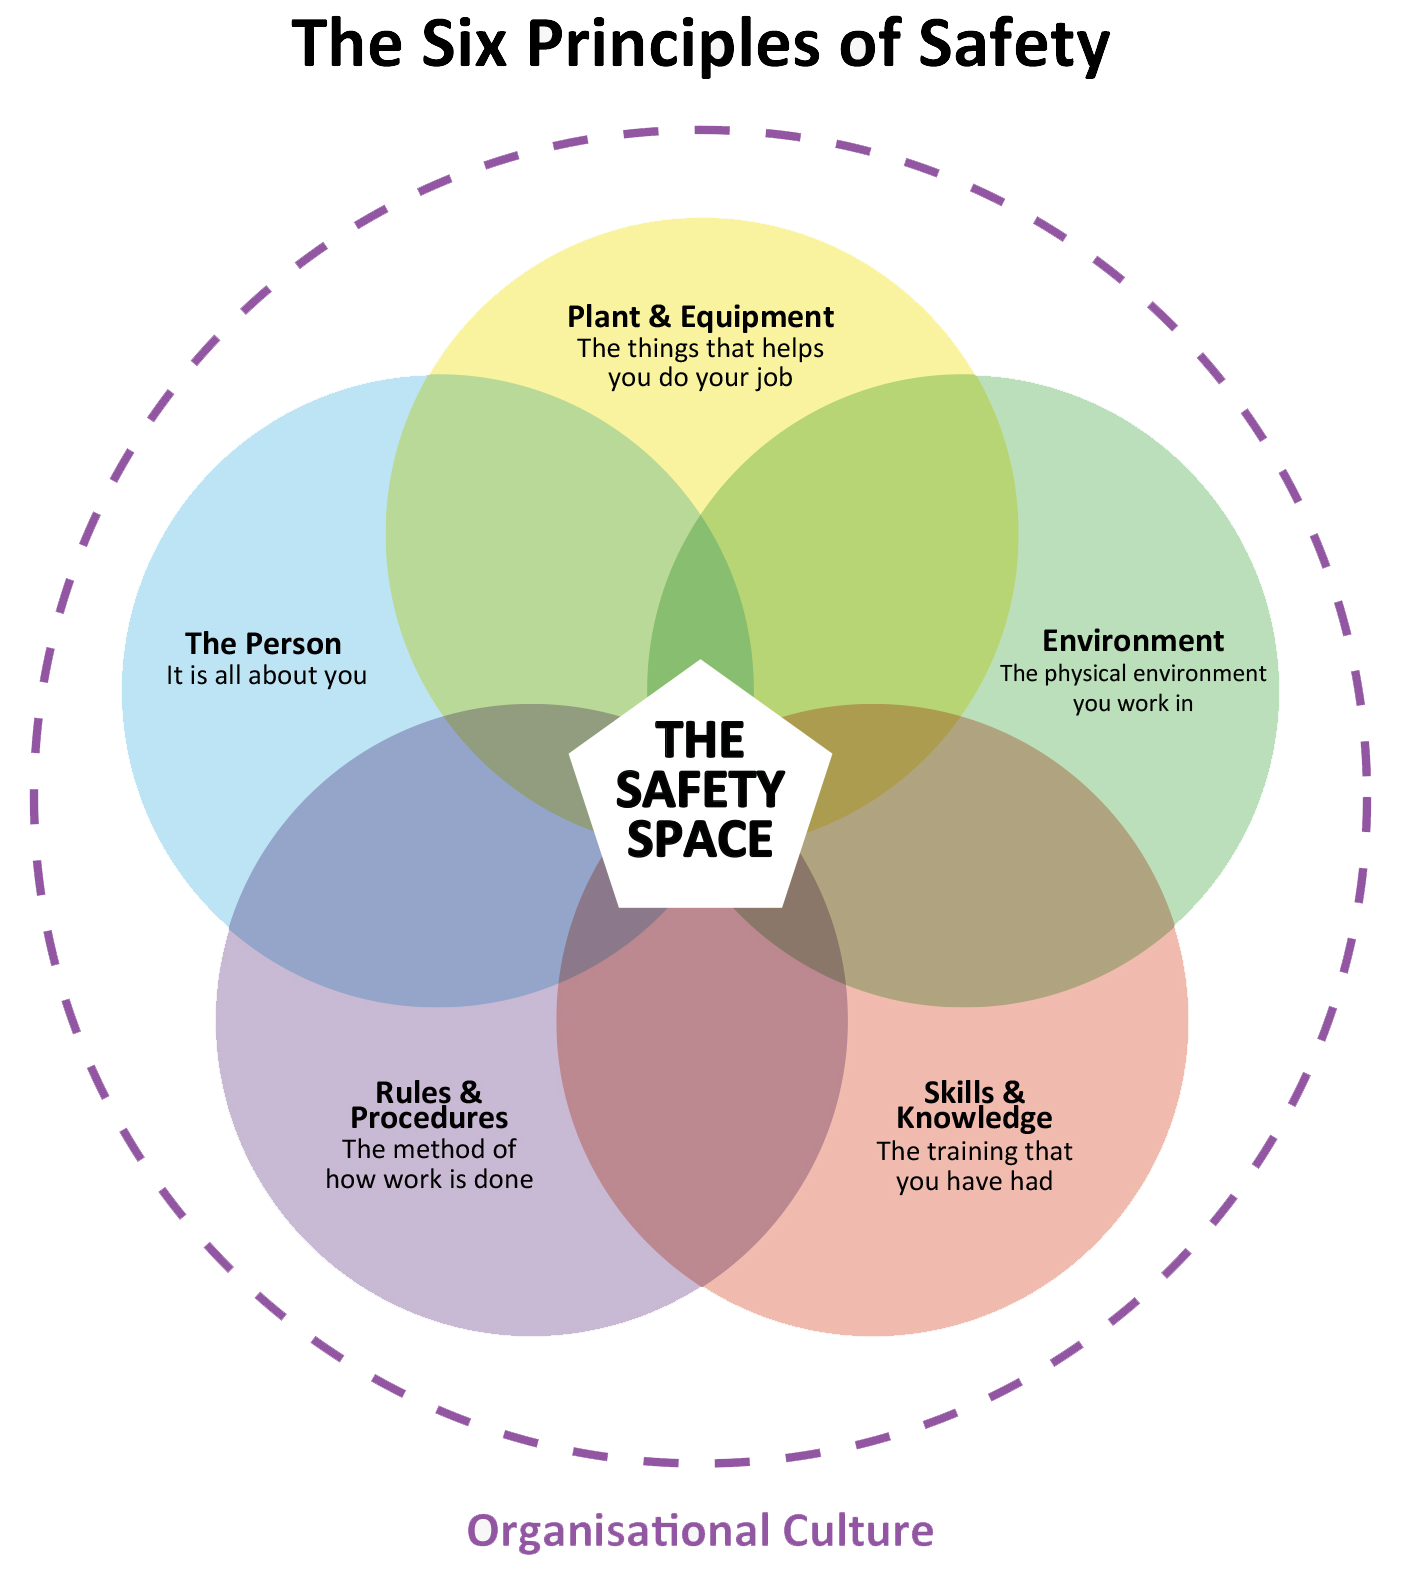 Safety Culture & Leadership